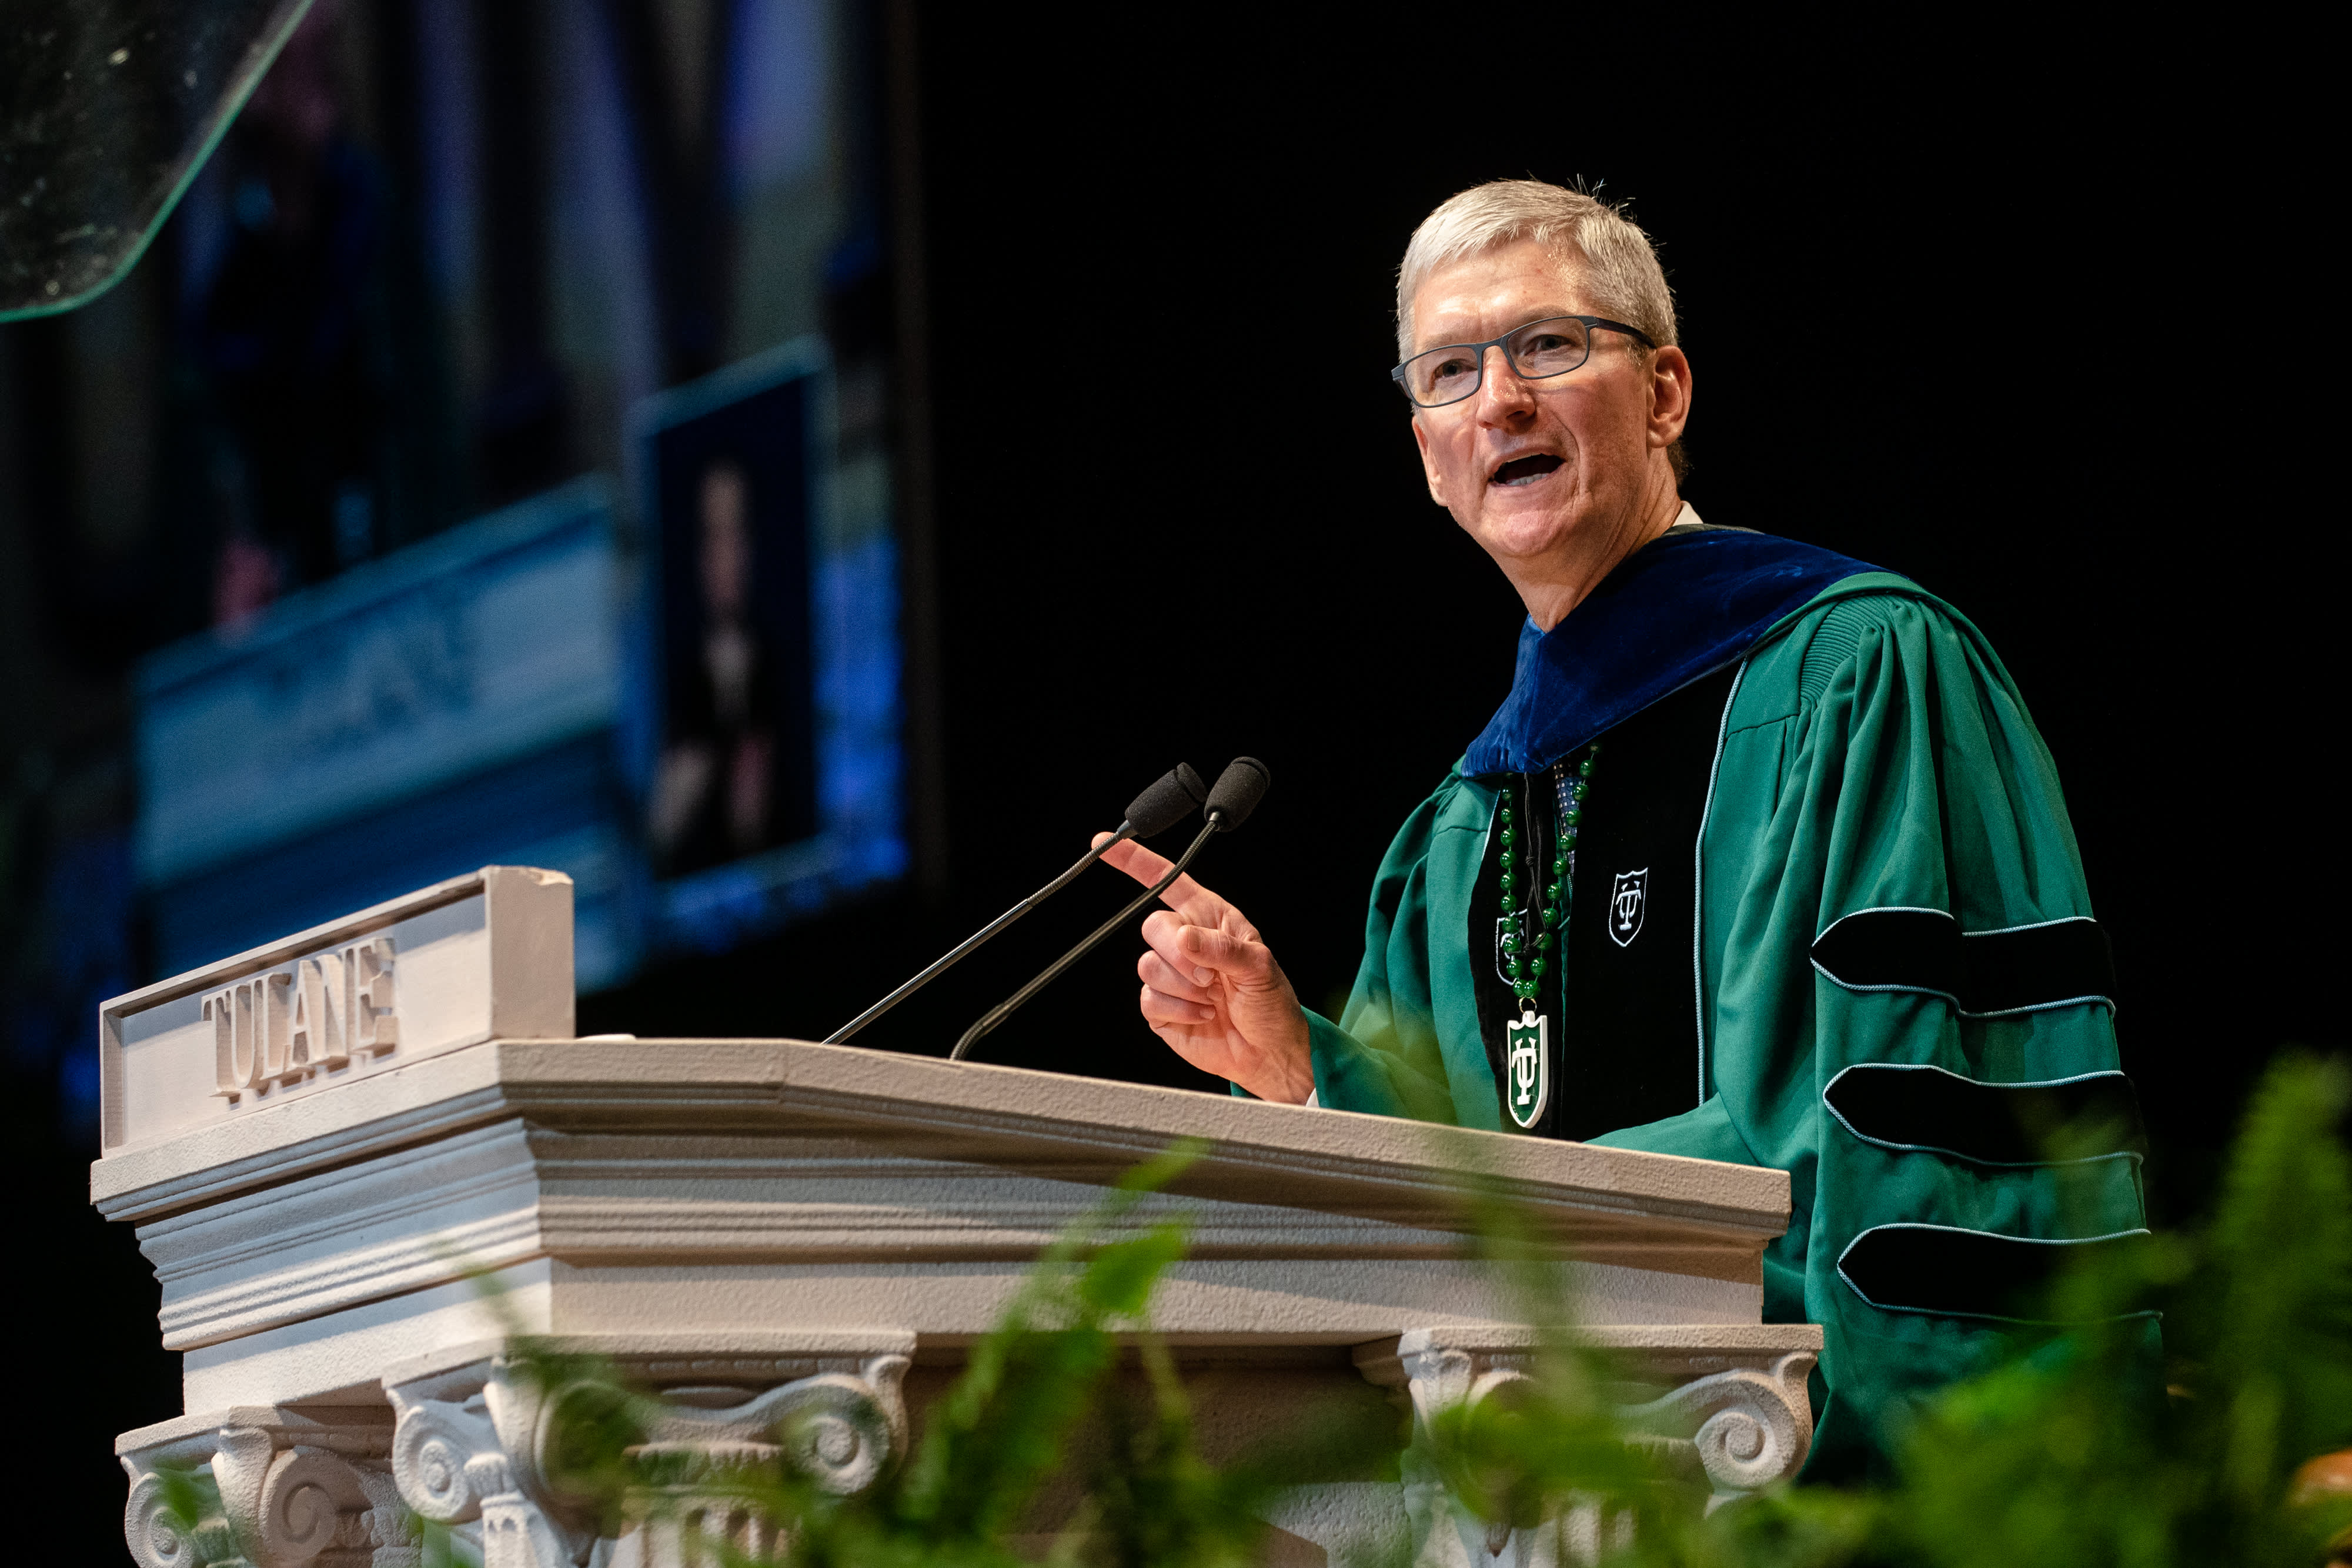 Apple CEO Tim Cook addresses Tulane University graduates at Commencement 2019 at Mercedes-Benz Superdome on May 18, 2019 in New Orleans, Louisiana.